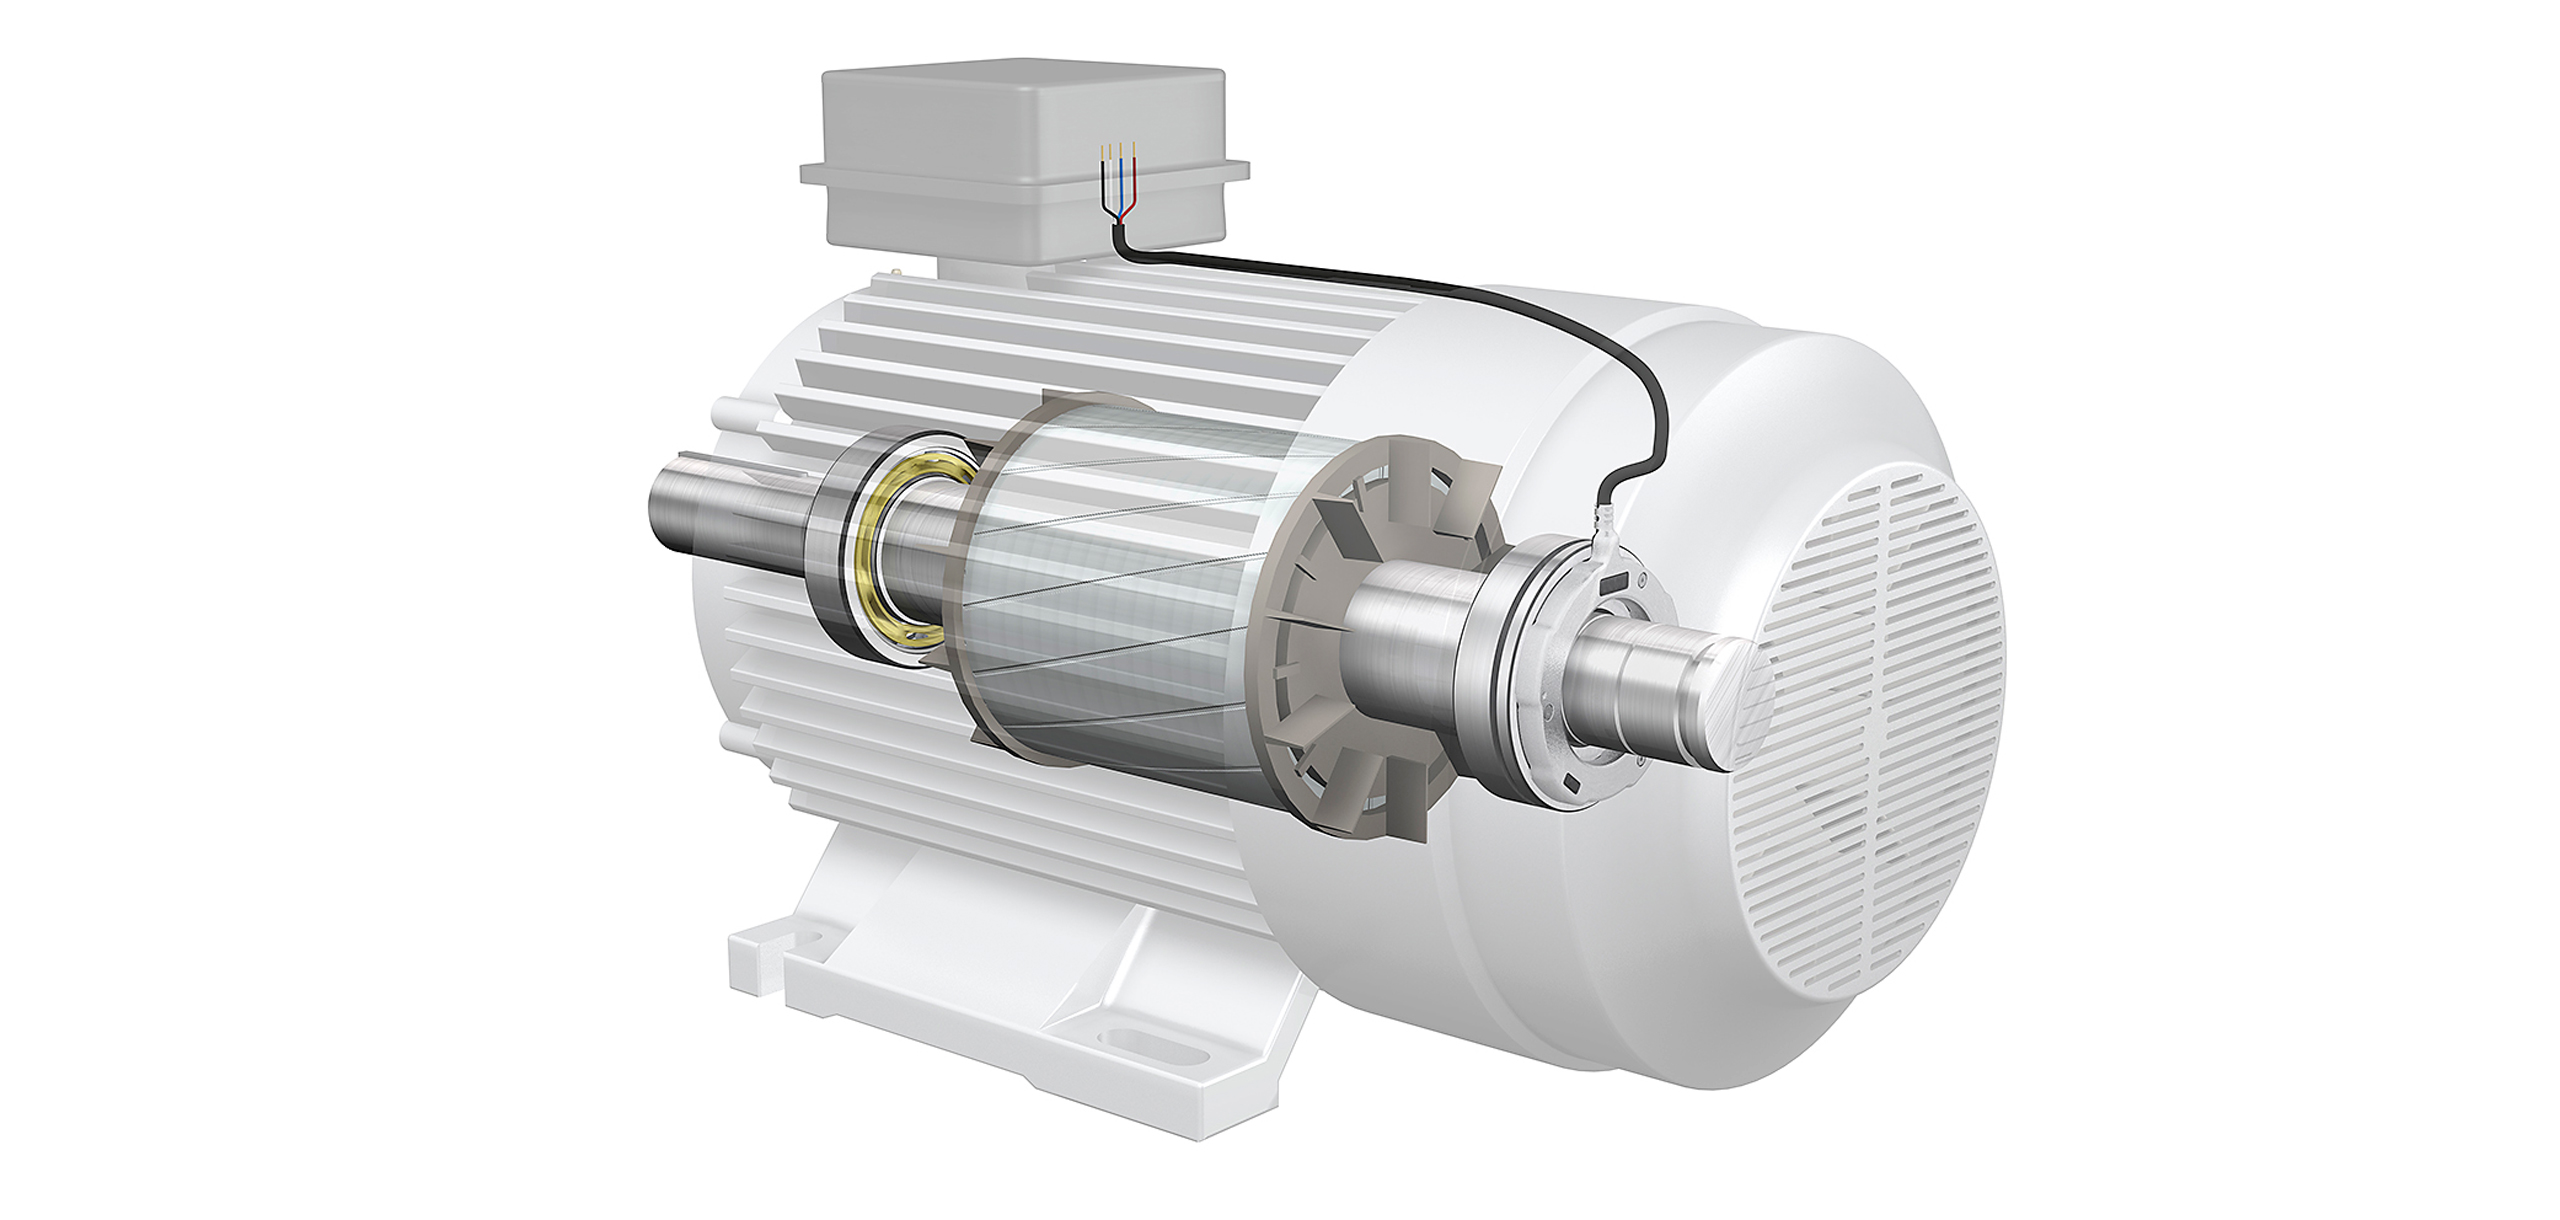 Reliable Motor Control With Newest Generation Skf Sensor